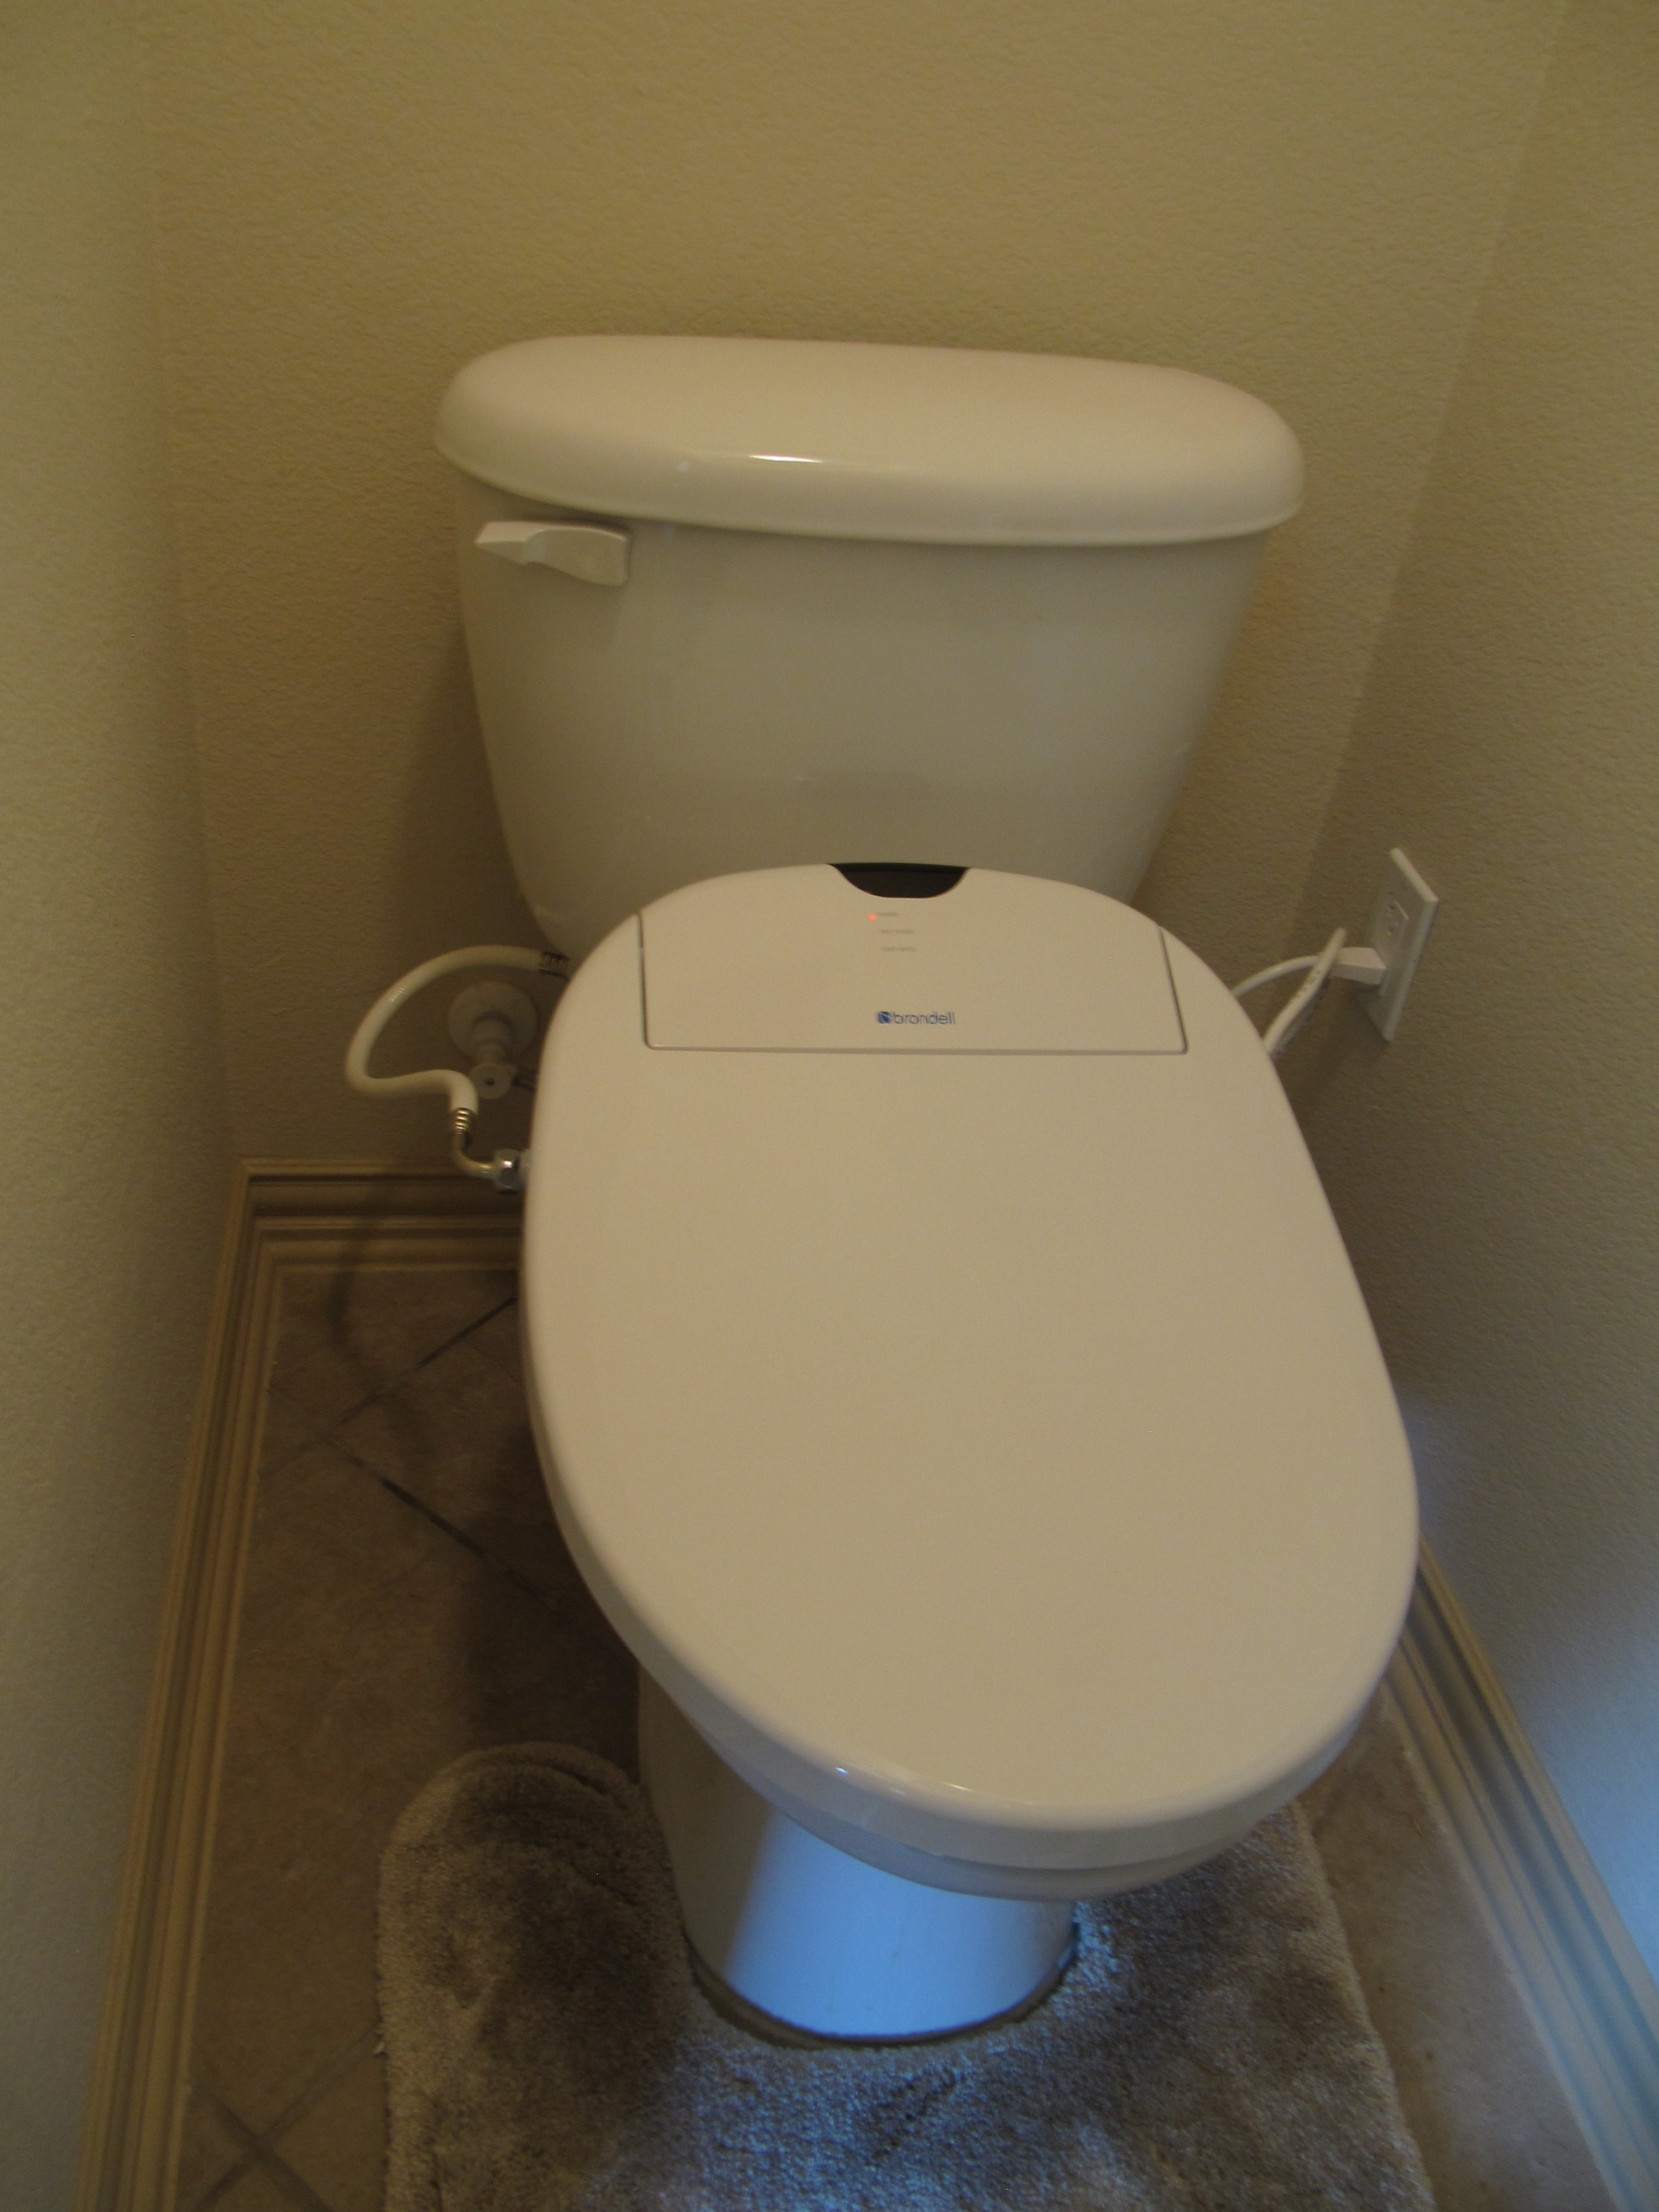 Surprising Brondell Swash 1400 Bidet Seat Customer Photo Gallery Real Ibusinesslaw Wood Chair Design Ideas Ibusinesslaworg